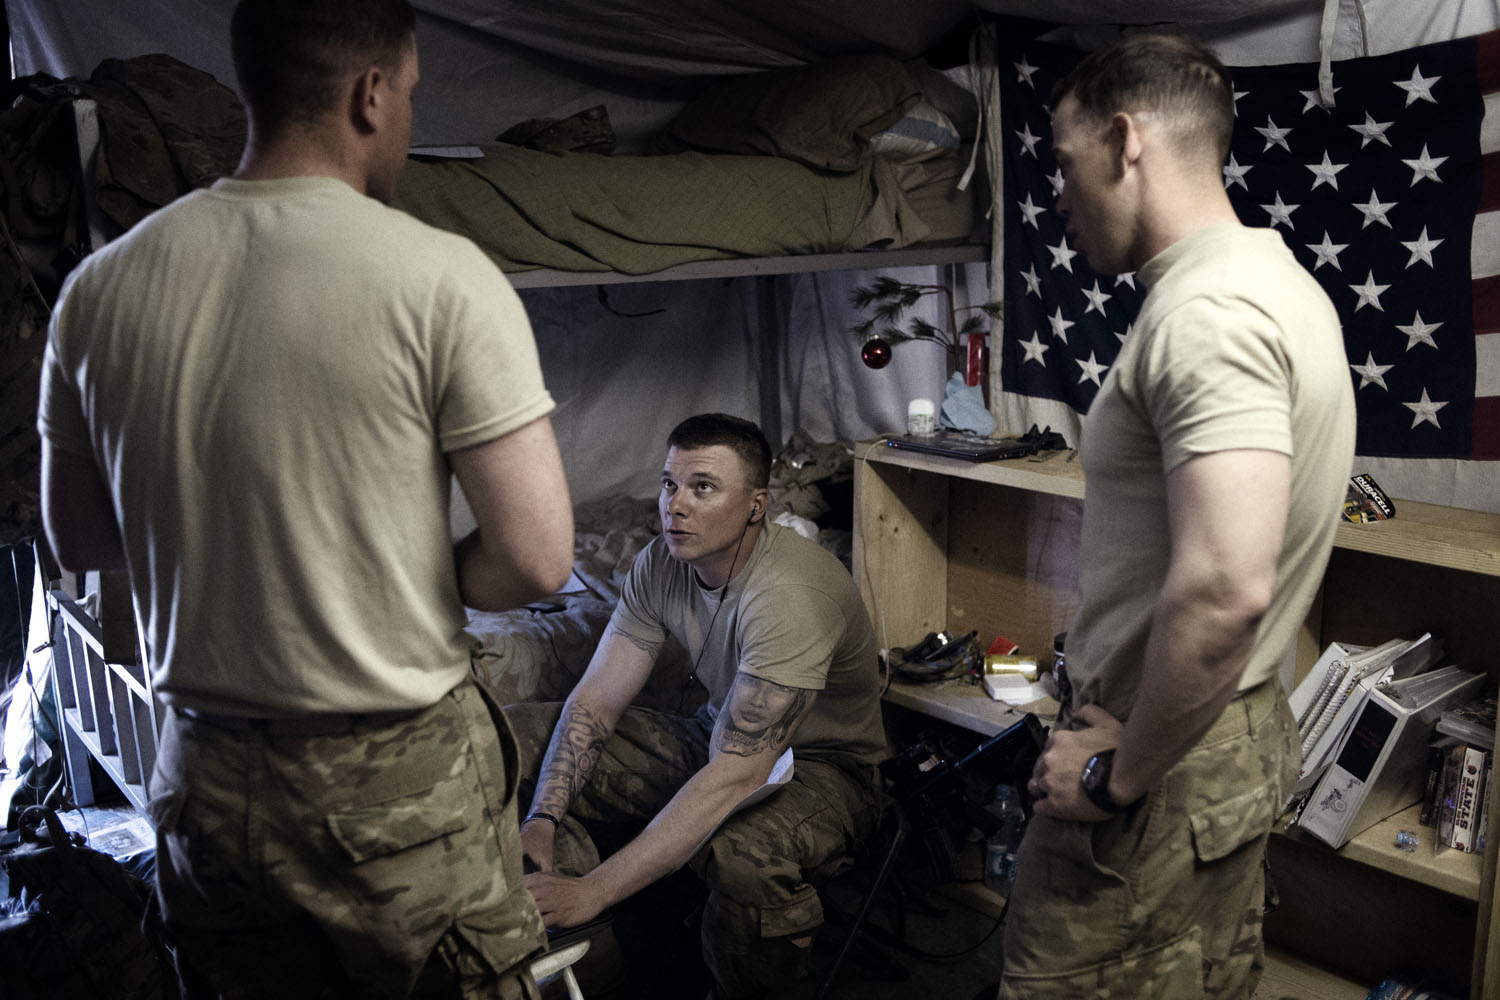 Paratroopers from 4th Battalion, 319th Airborne Field Artillery Regiment, pack their gear in preparation to load containers at Forward Operating Base Altimur, Logar Province, Afghanistan. The soldiers' gear will be shipped to their home base in Germany before they depart the country.